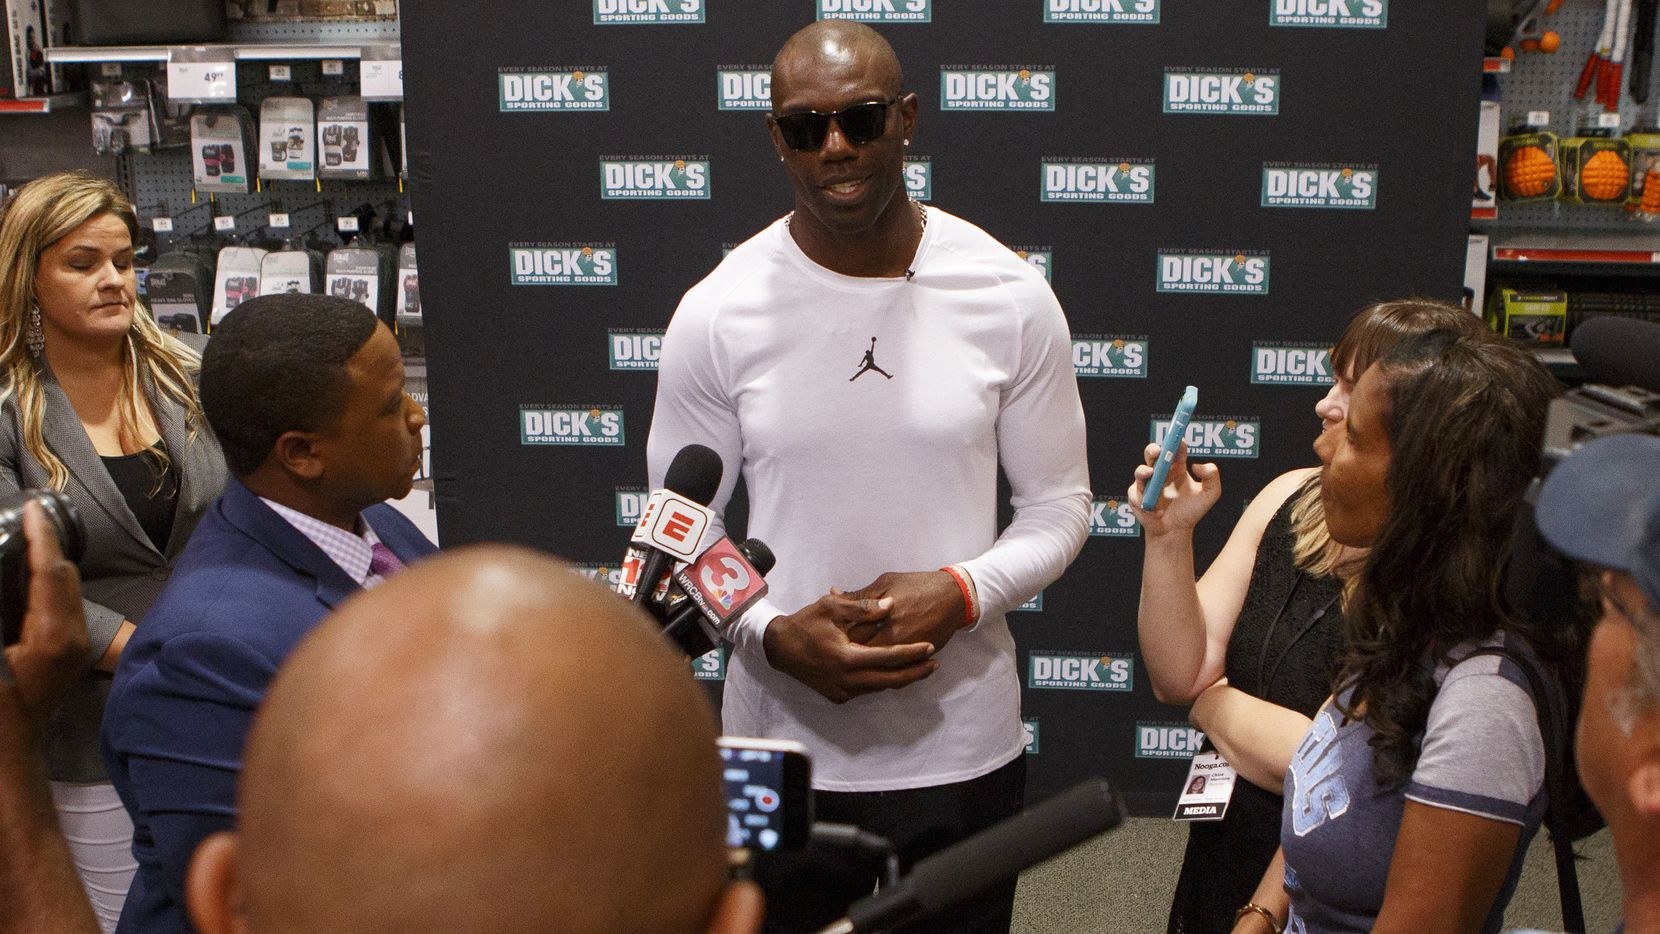 Former University of Tennessee at Chattanooga wide receiver and National Football League Hall of Fame inductee Terrell Owens speaks to the media at Dick's Sporting Goods on Friday, Aug. 3, 2018 in Chattanooga, Tenn. Owens, who is foregoing the traditional Hall of Fame ceremony, is spending the weekend celebrating his induction in Chattanooga.  (C.B. Schmelter/Chattanooga Times Free Press via AP)